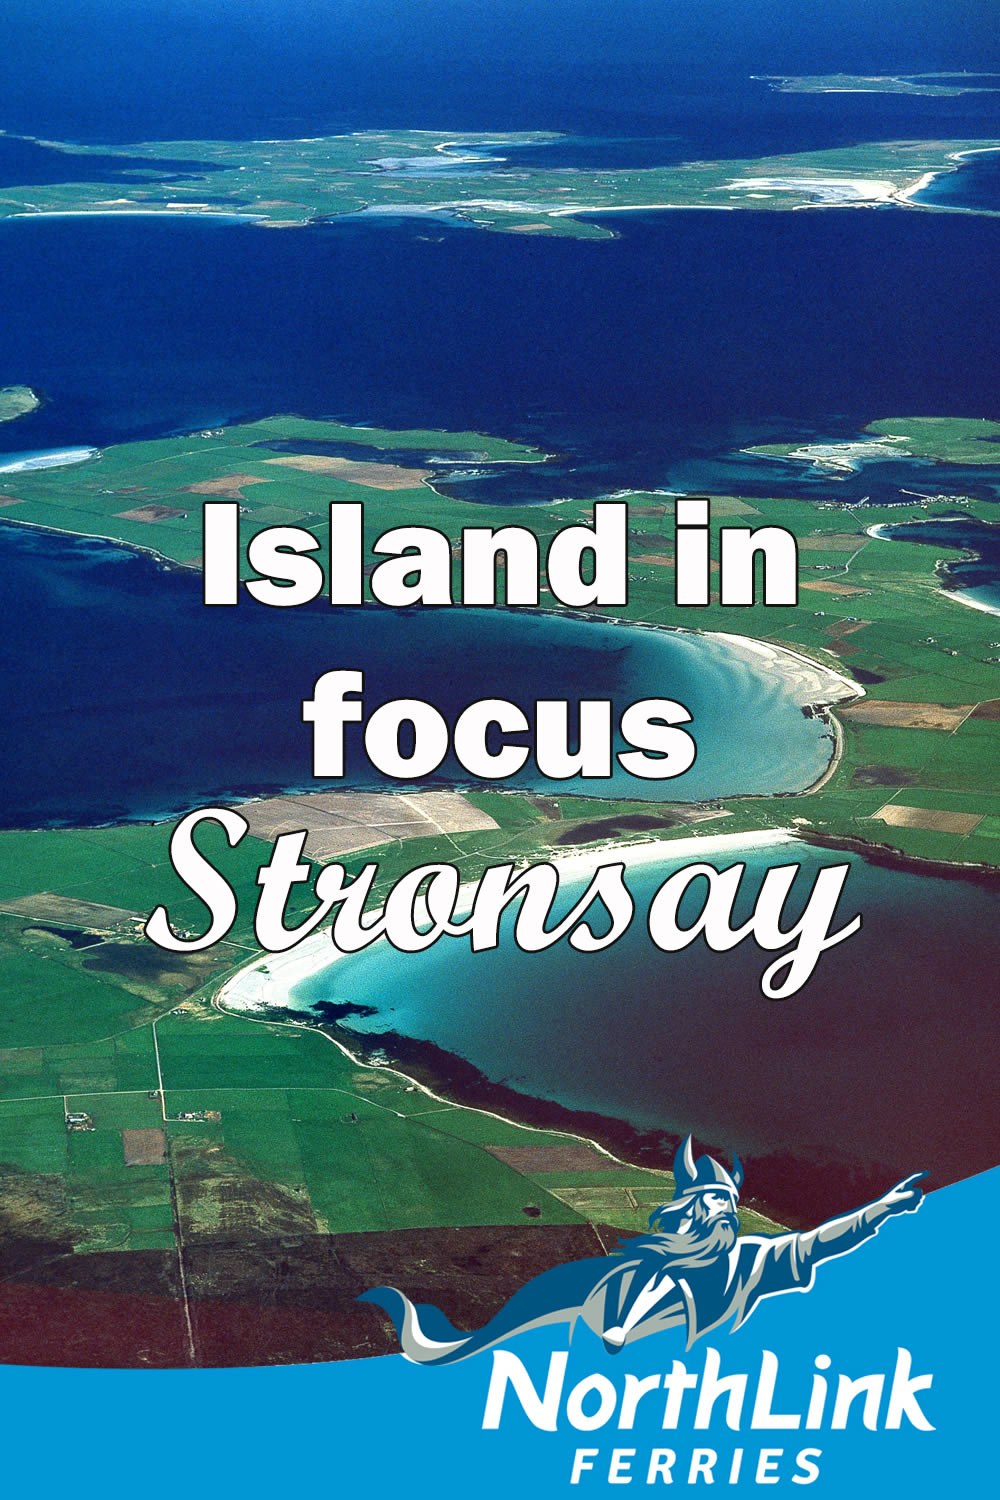 Island in Focus – Stronsay